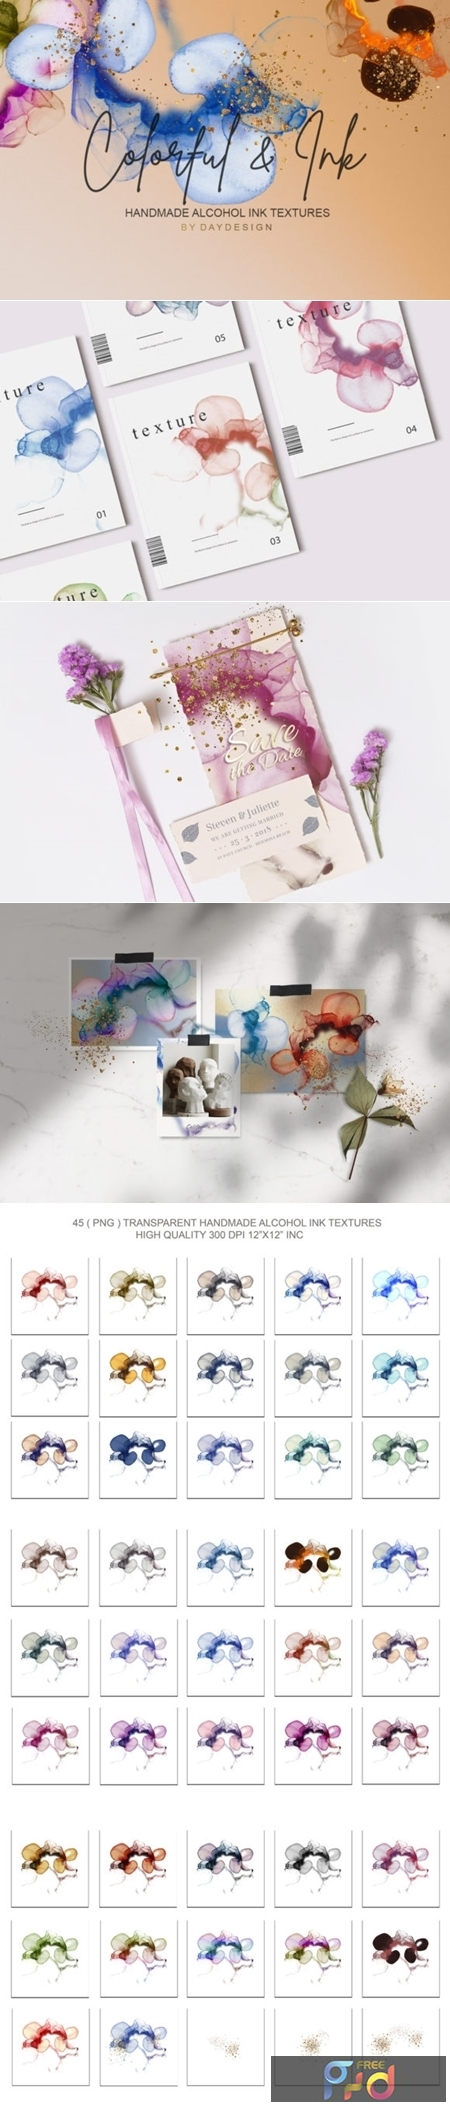 Alcohol Ink Textures PNG 3449287 1